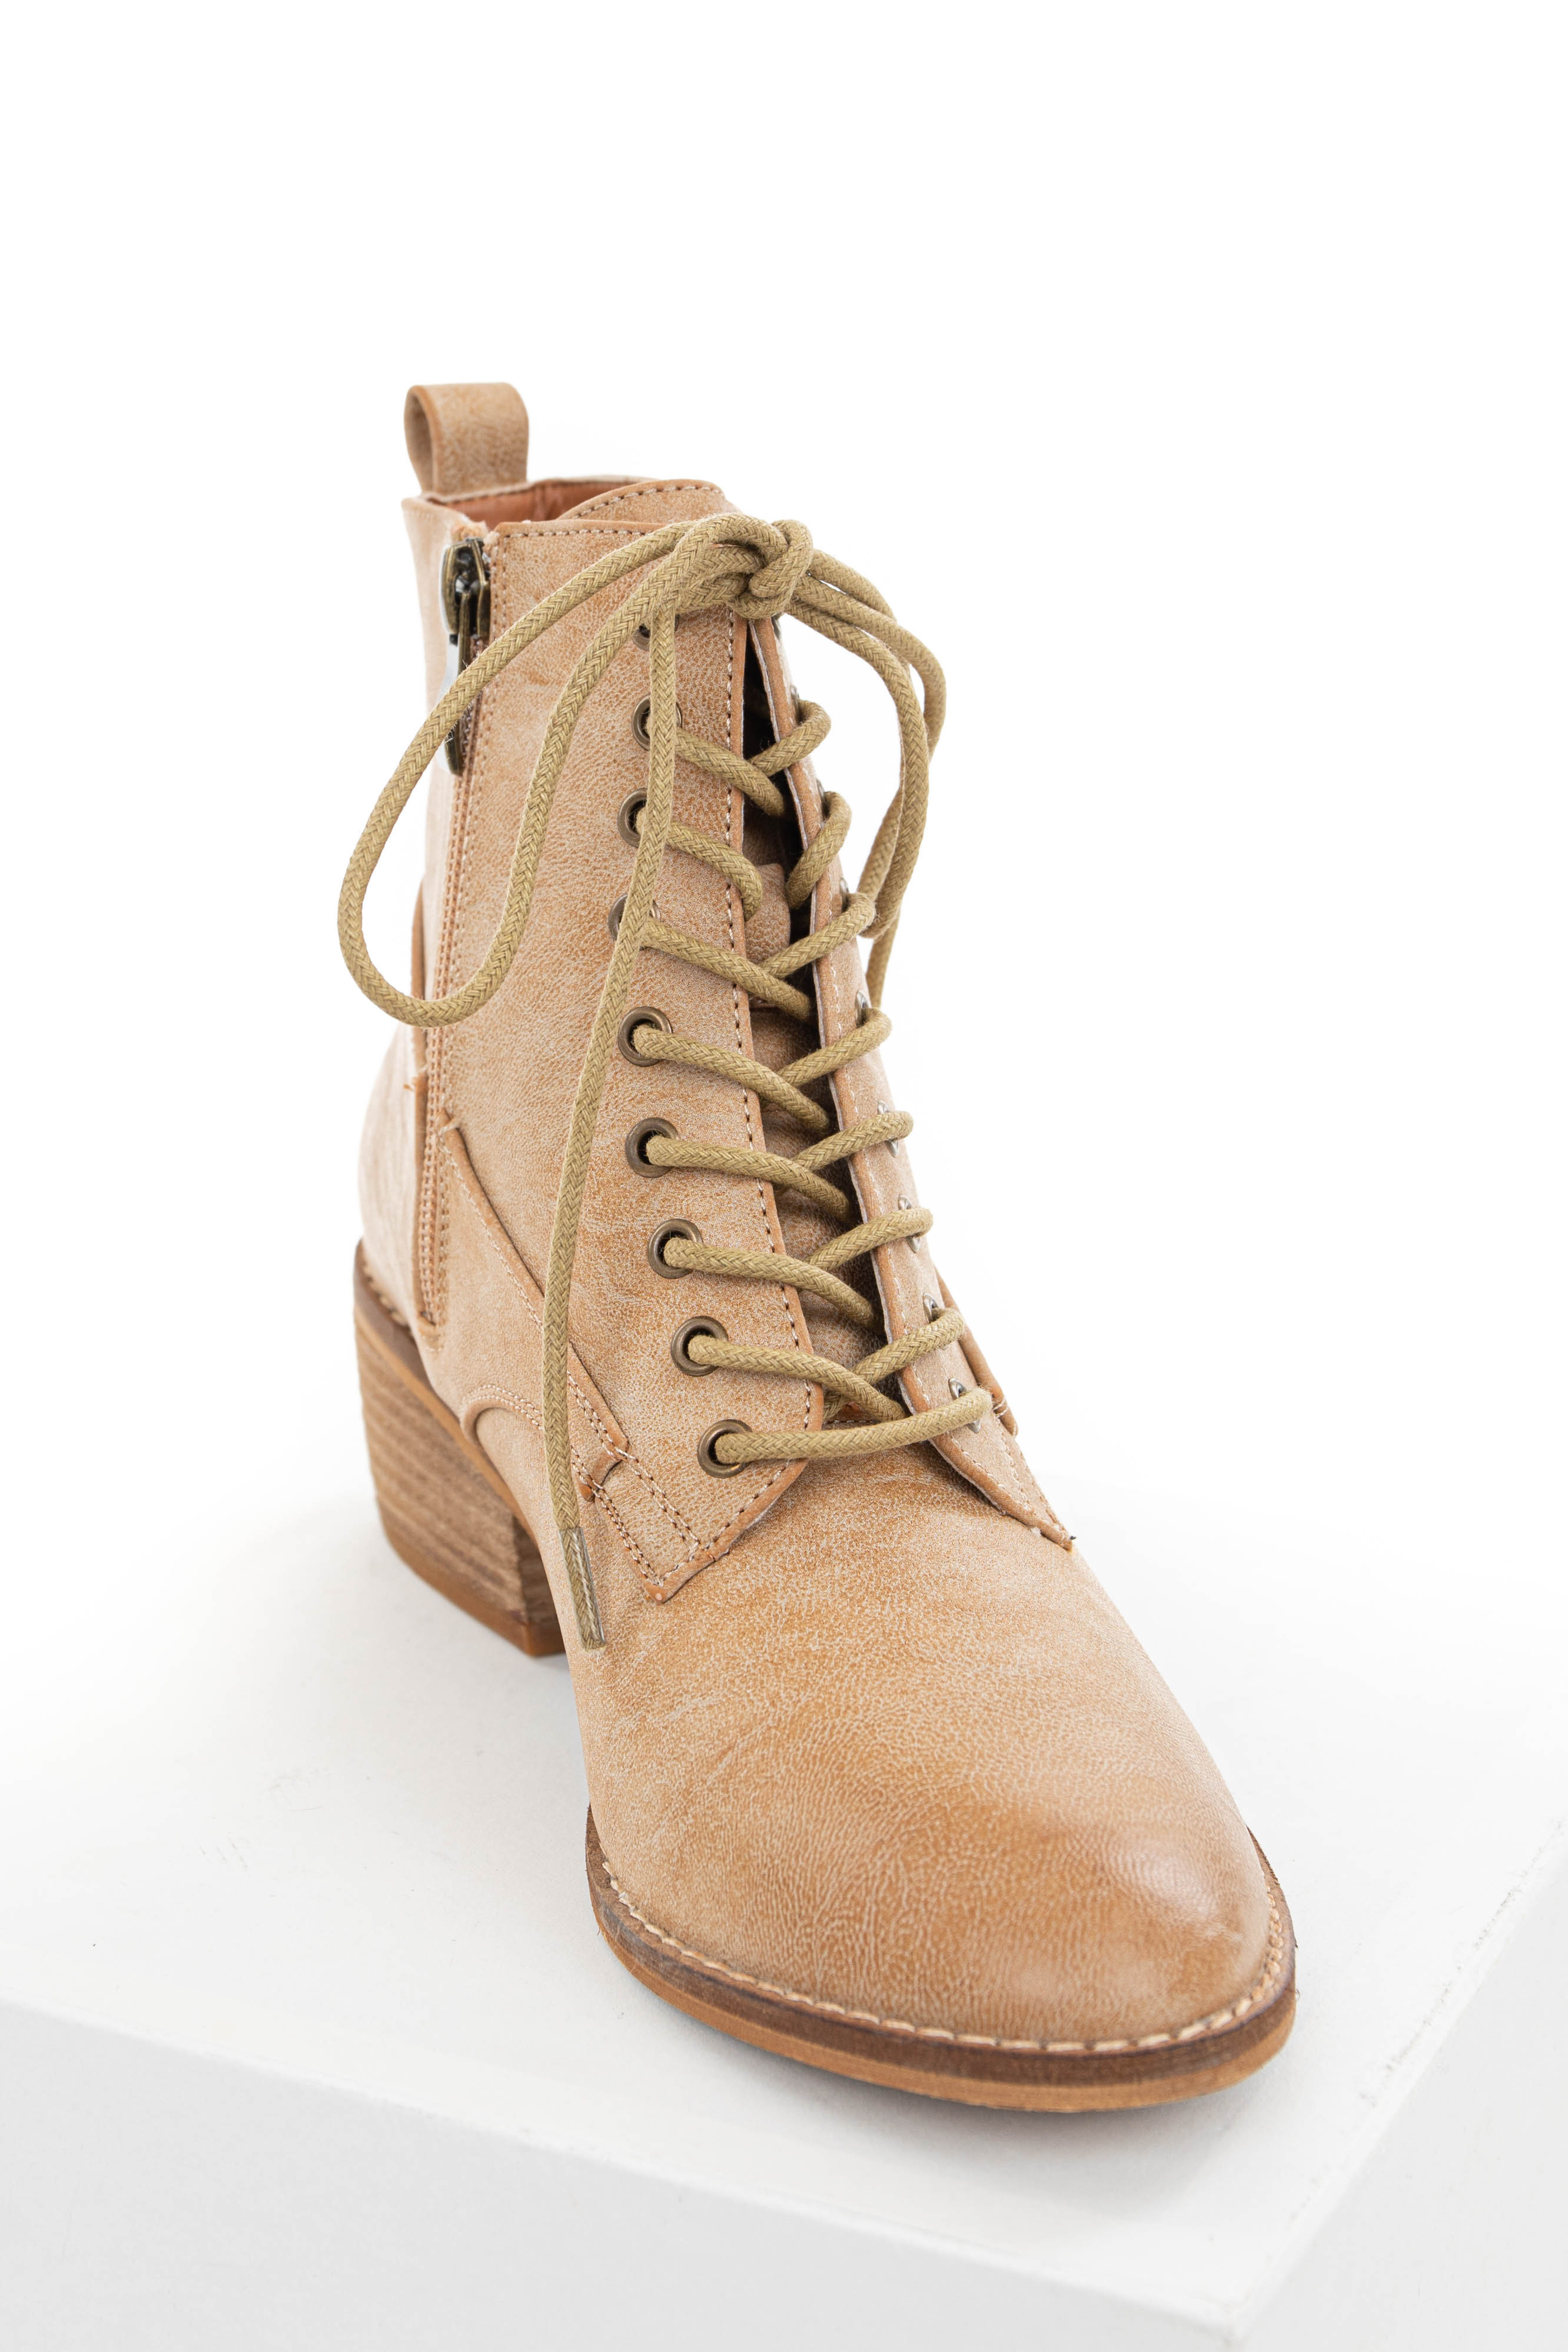 Desert Sand Faux Leather Heeled Booties with Lace Up Front